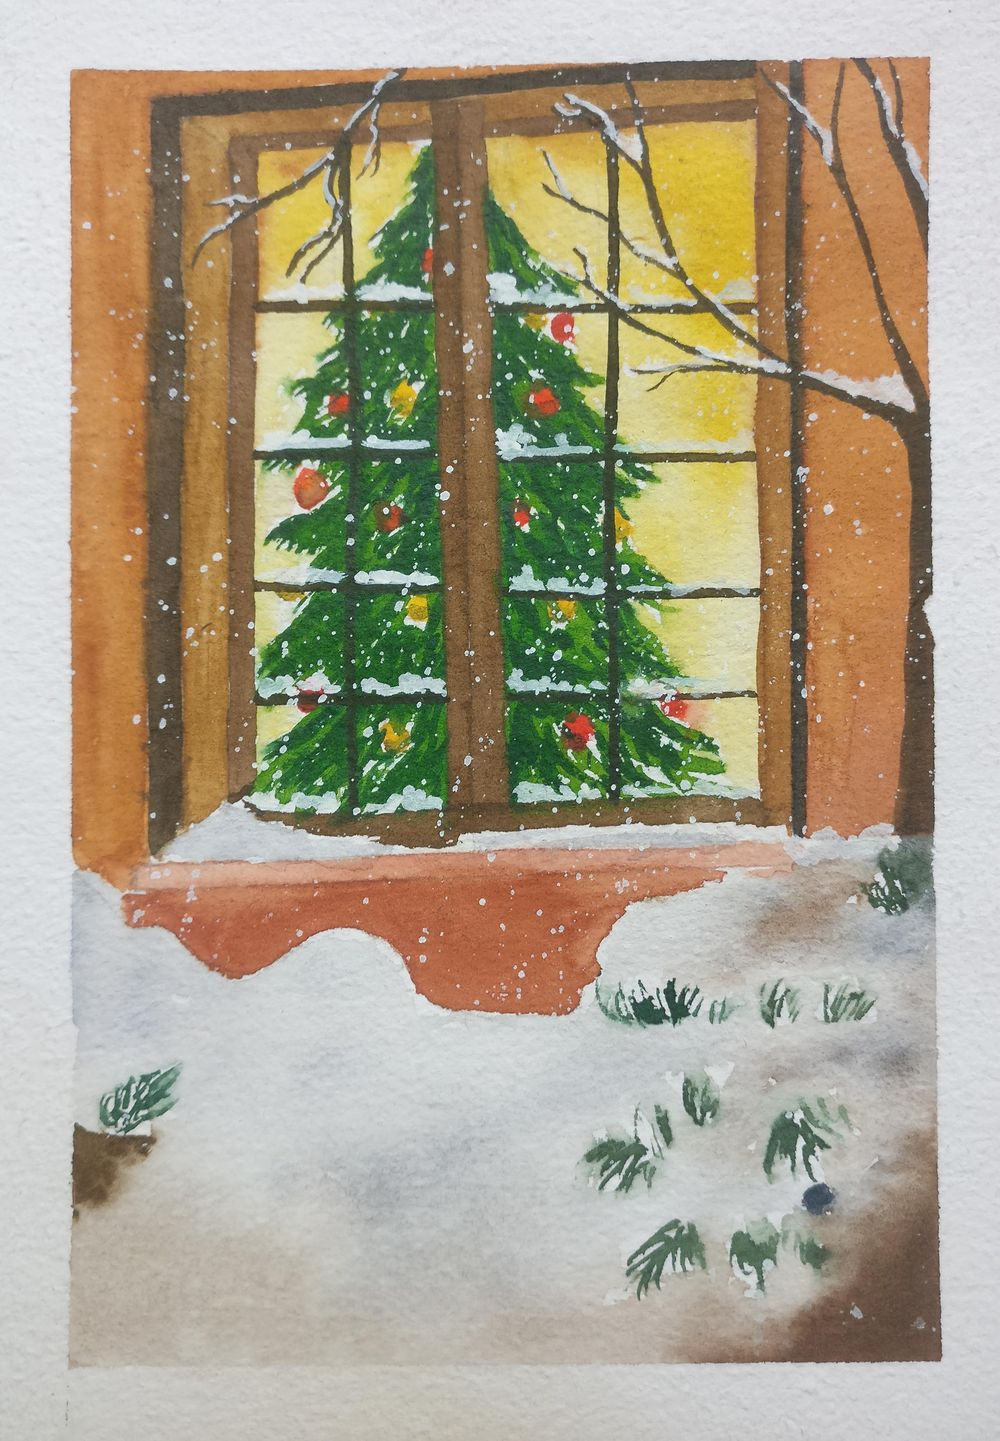 Christmas with watercolors - image 7 - student project